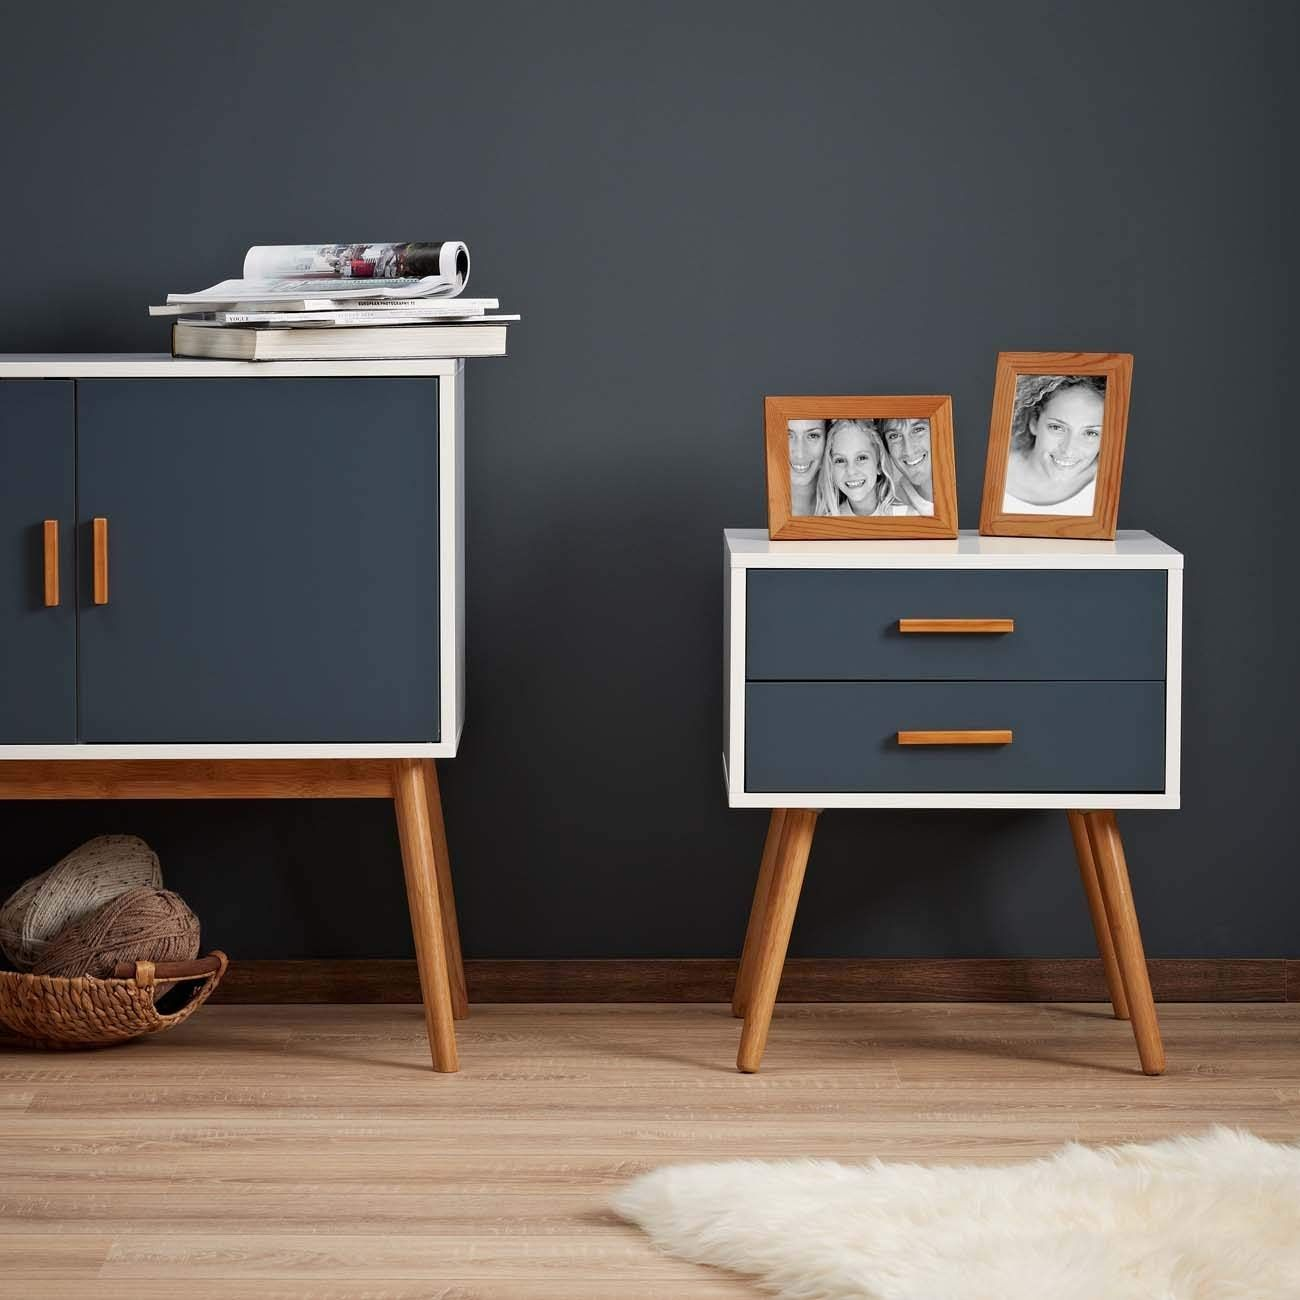 Lomos Bedside Table Odin Out Of Wood In White With Two Draws In A Modern Shade Of Grey Amazon Co Uk Kitche Upcycled Furniture Furniture Makeover Furniture